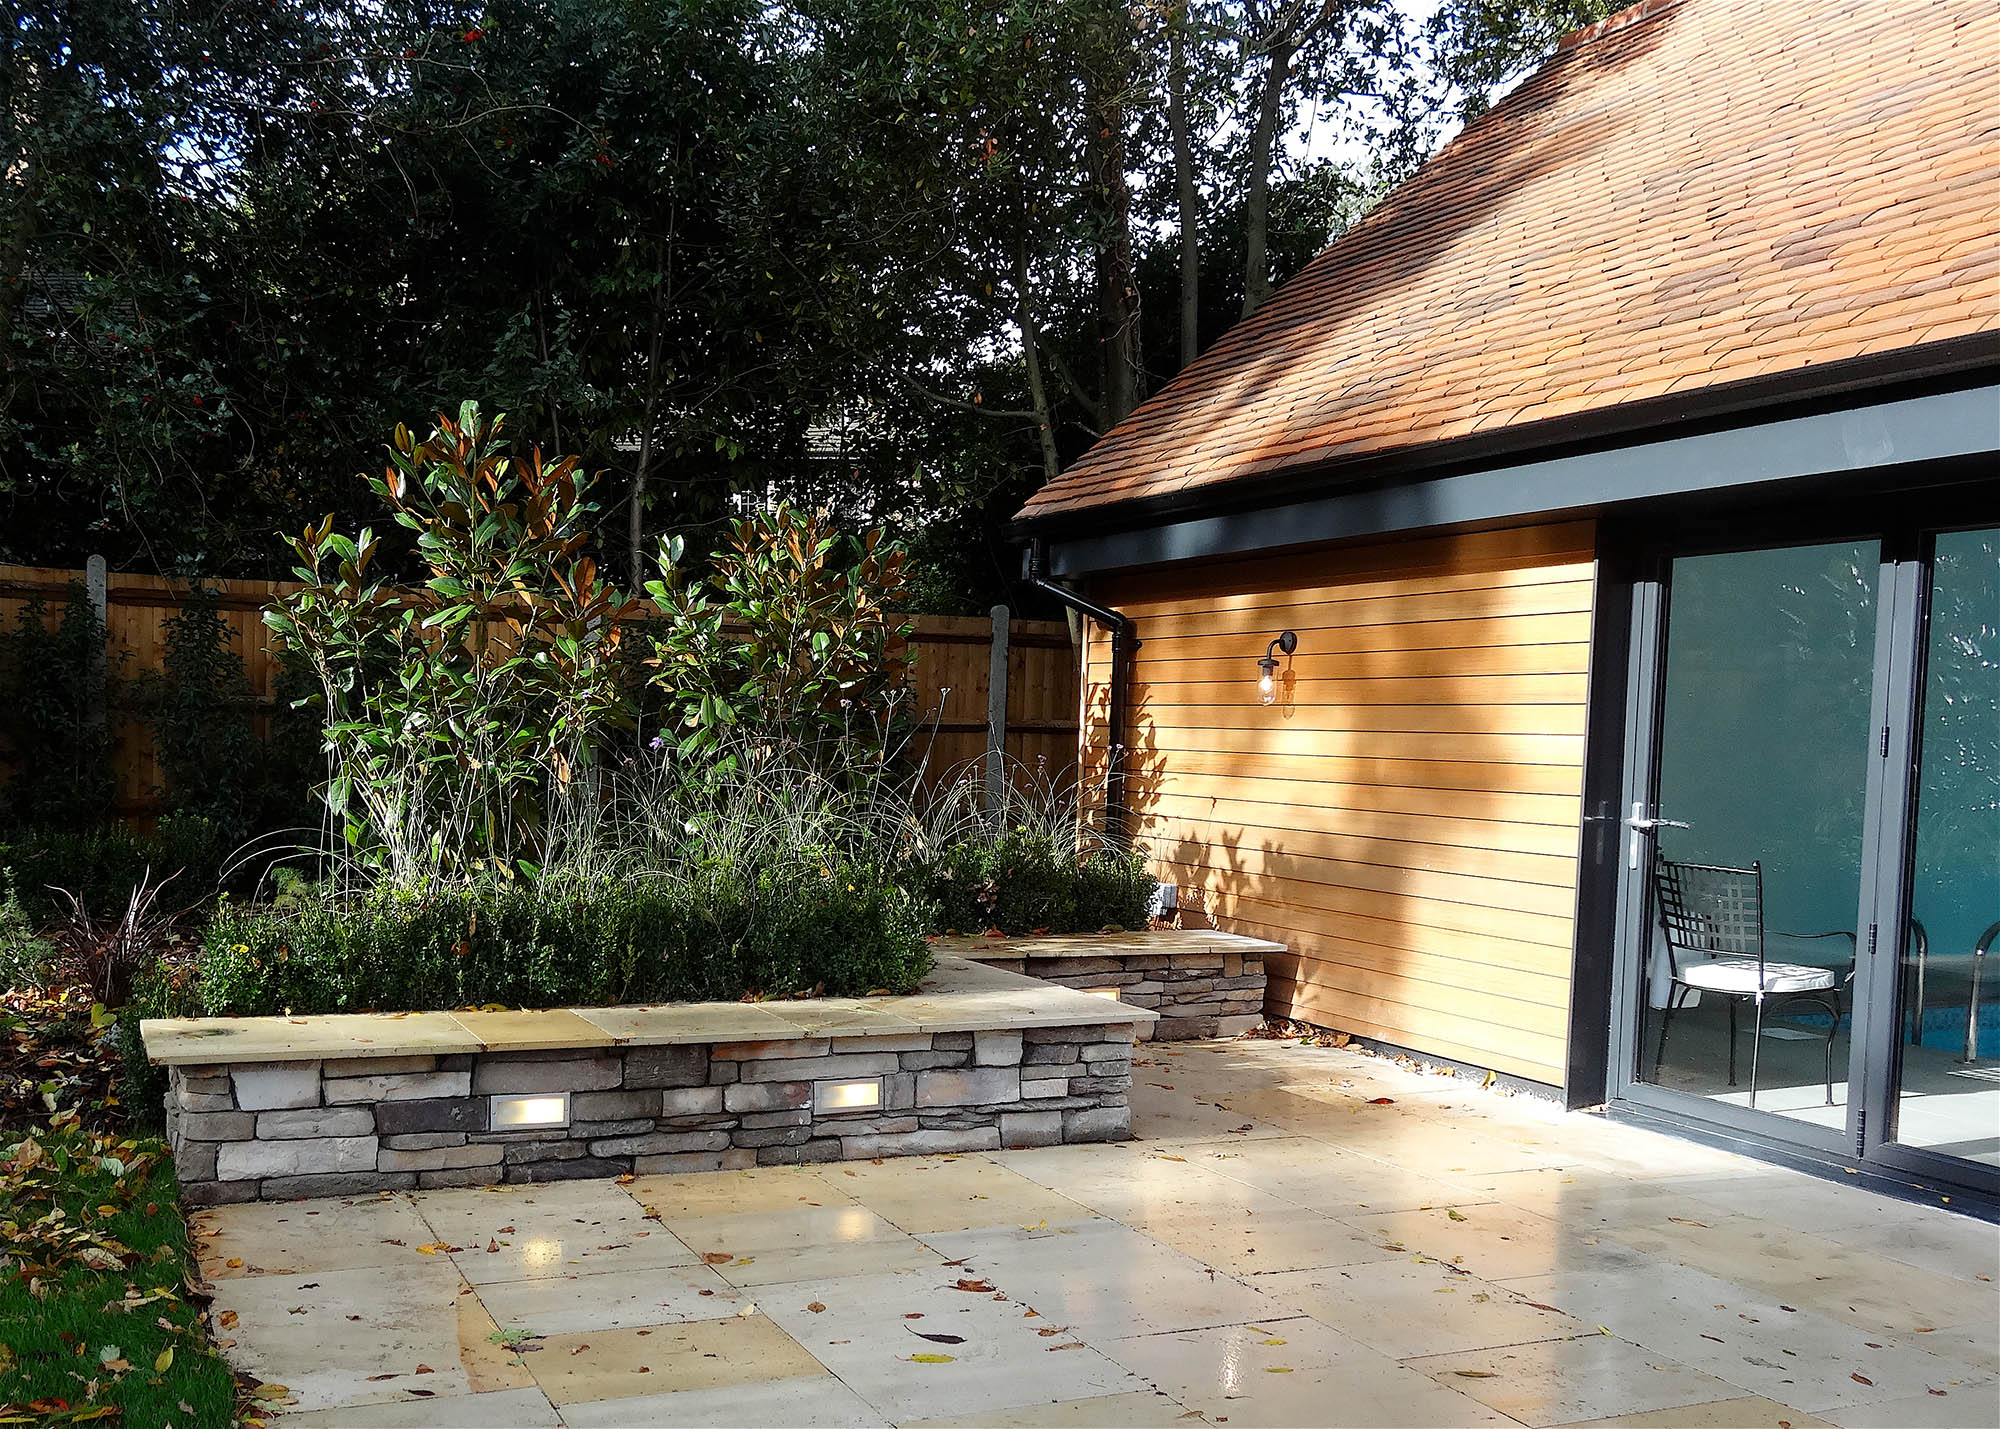 Exterior and entrance to timber barn style pool house for Kingston home.